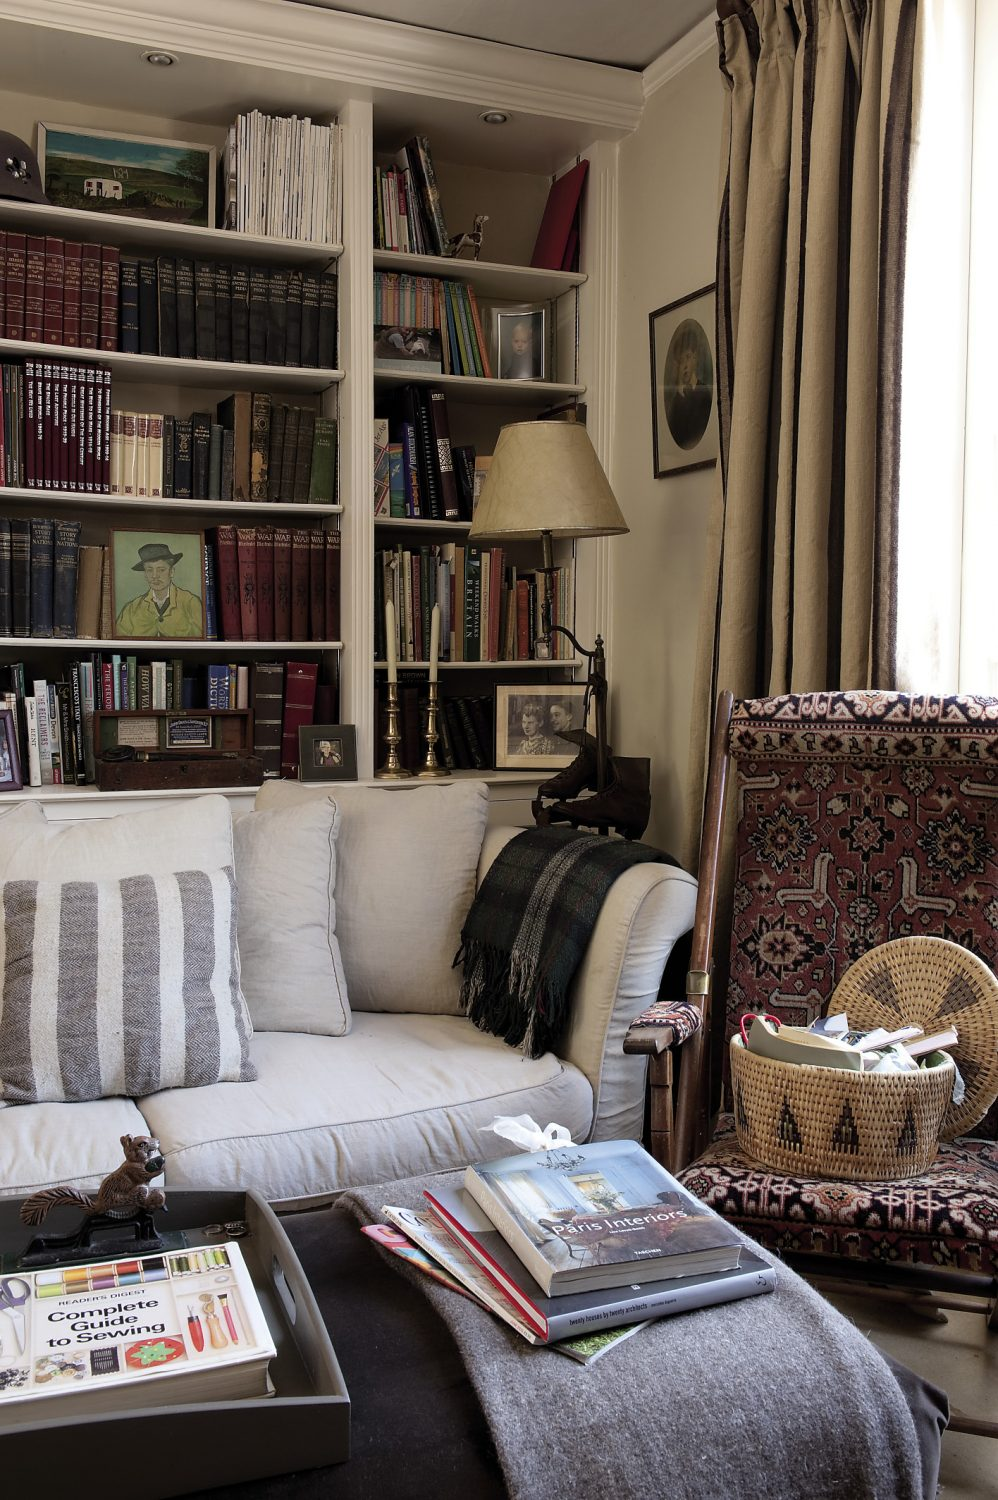 """Behind the drawing room sofa is a pair of double doors that Pippa draws back to reveal the private sitting room. """"This is a great place to read or sew,"""" says Pippa. """"Our guests can use the drawing room, but it's nice to have somewhere that we can retreat to now and then."""""""